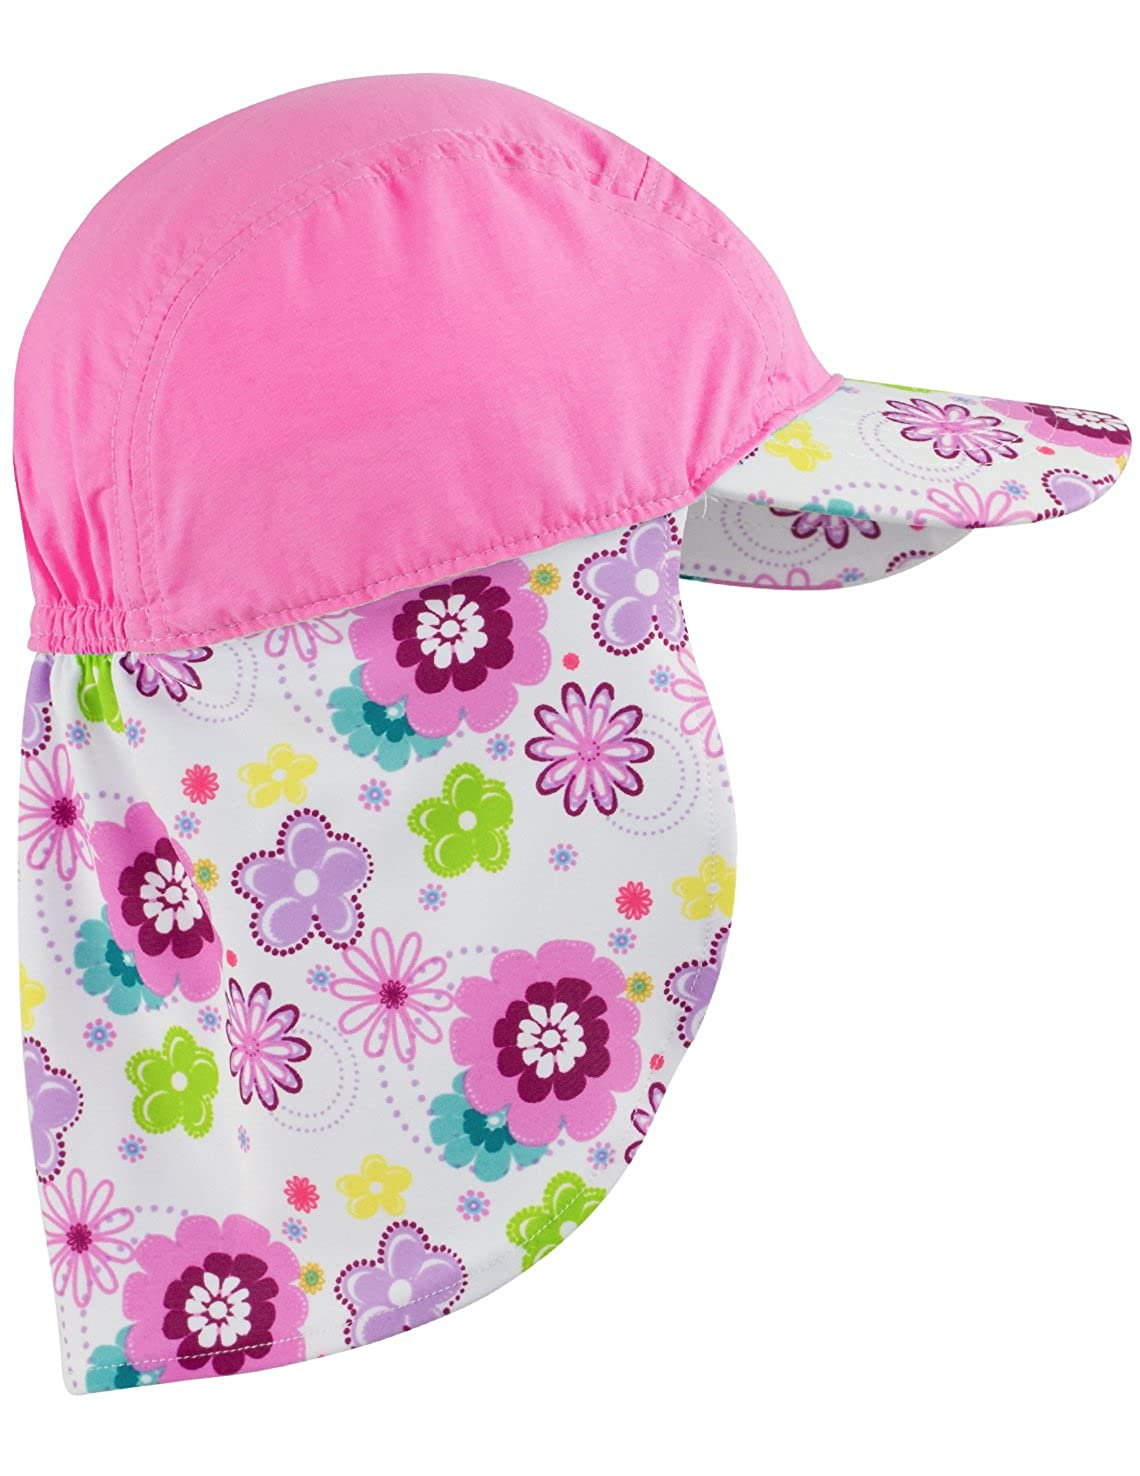 Poppyberry or Mallowberry Sun Protection Sun Busters Girls UV Legionnaire Hat 2-12 Years UPF50